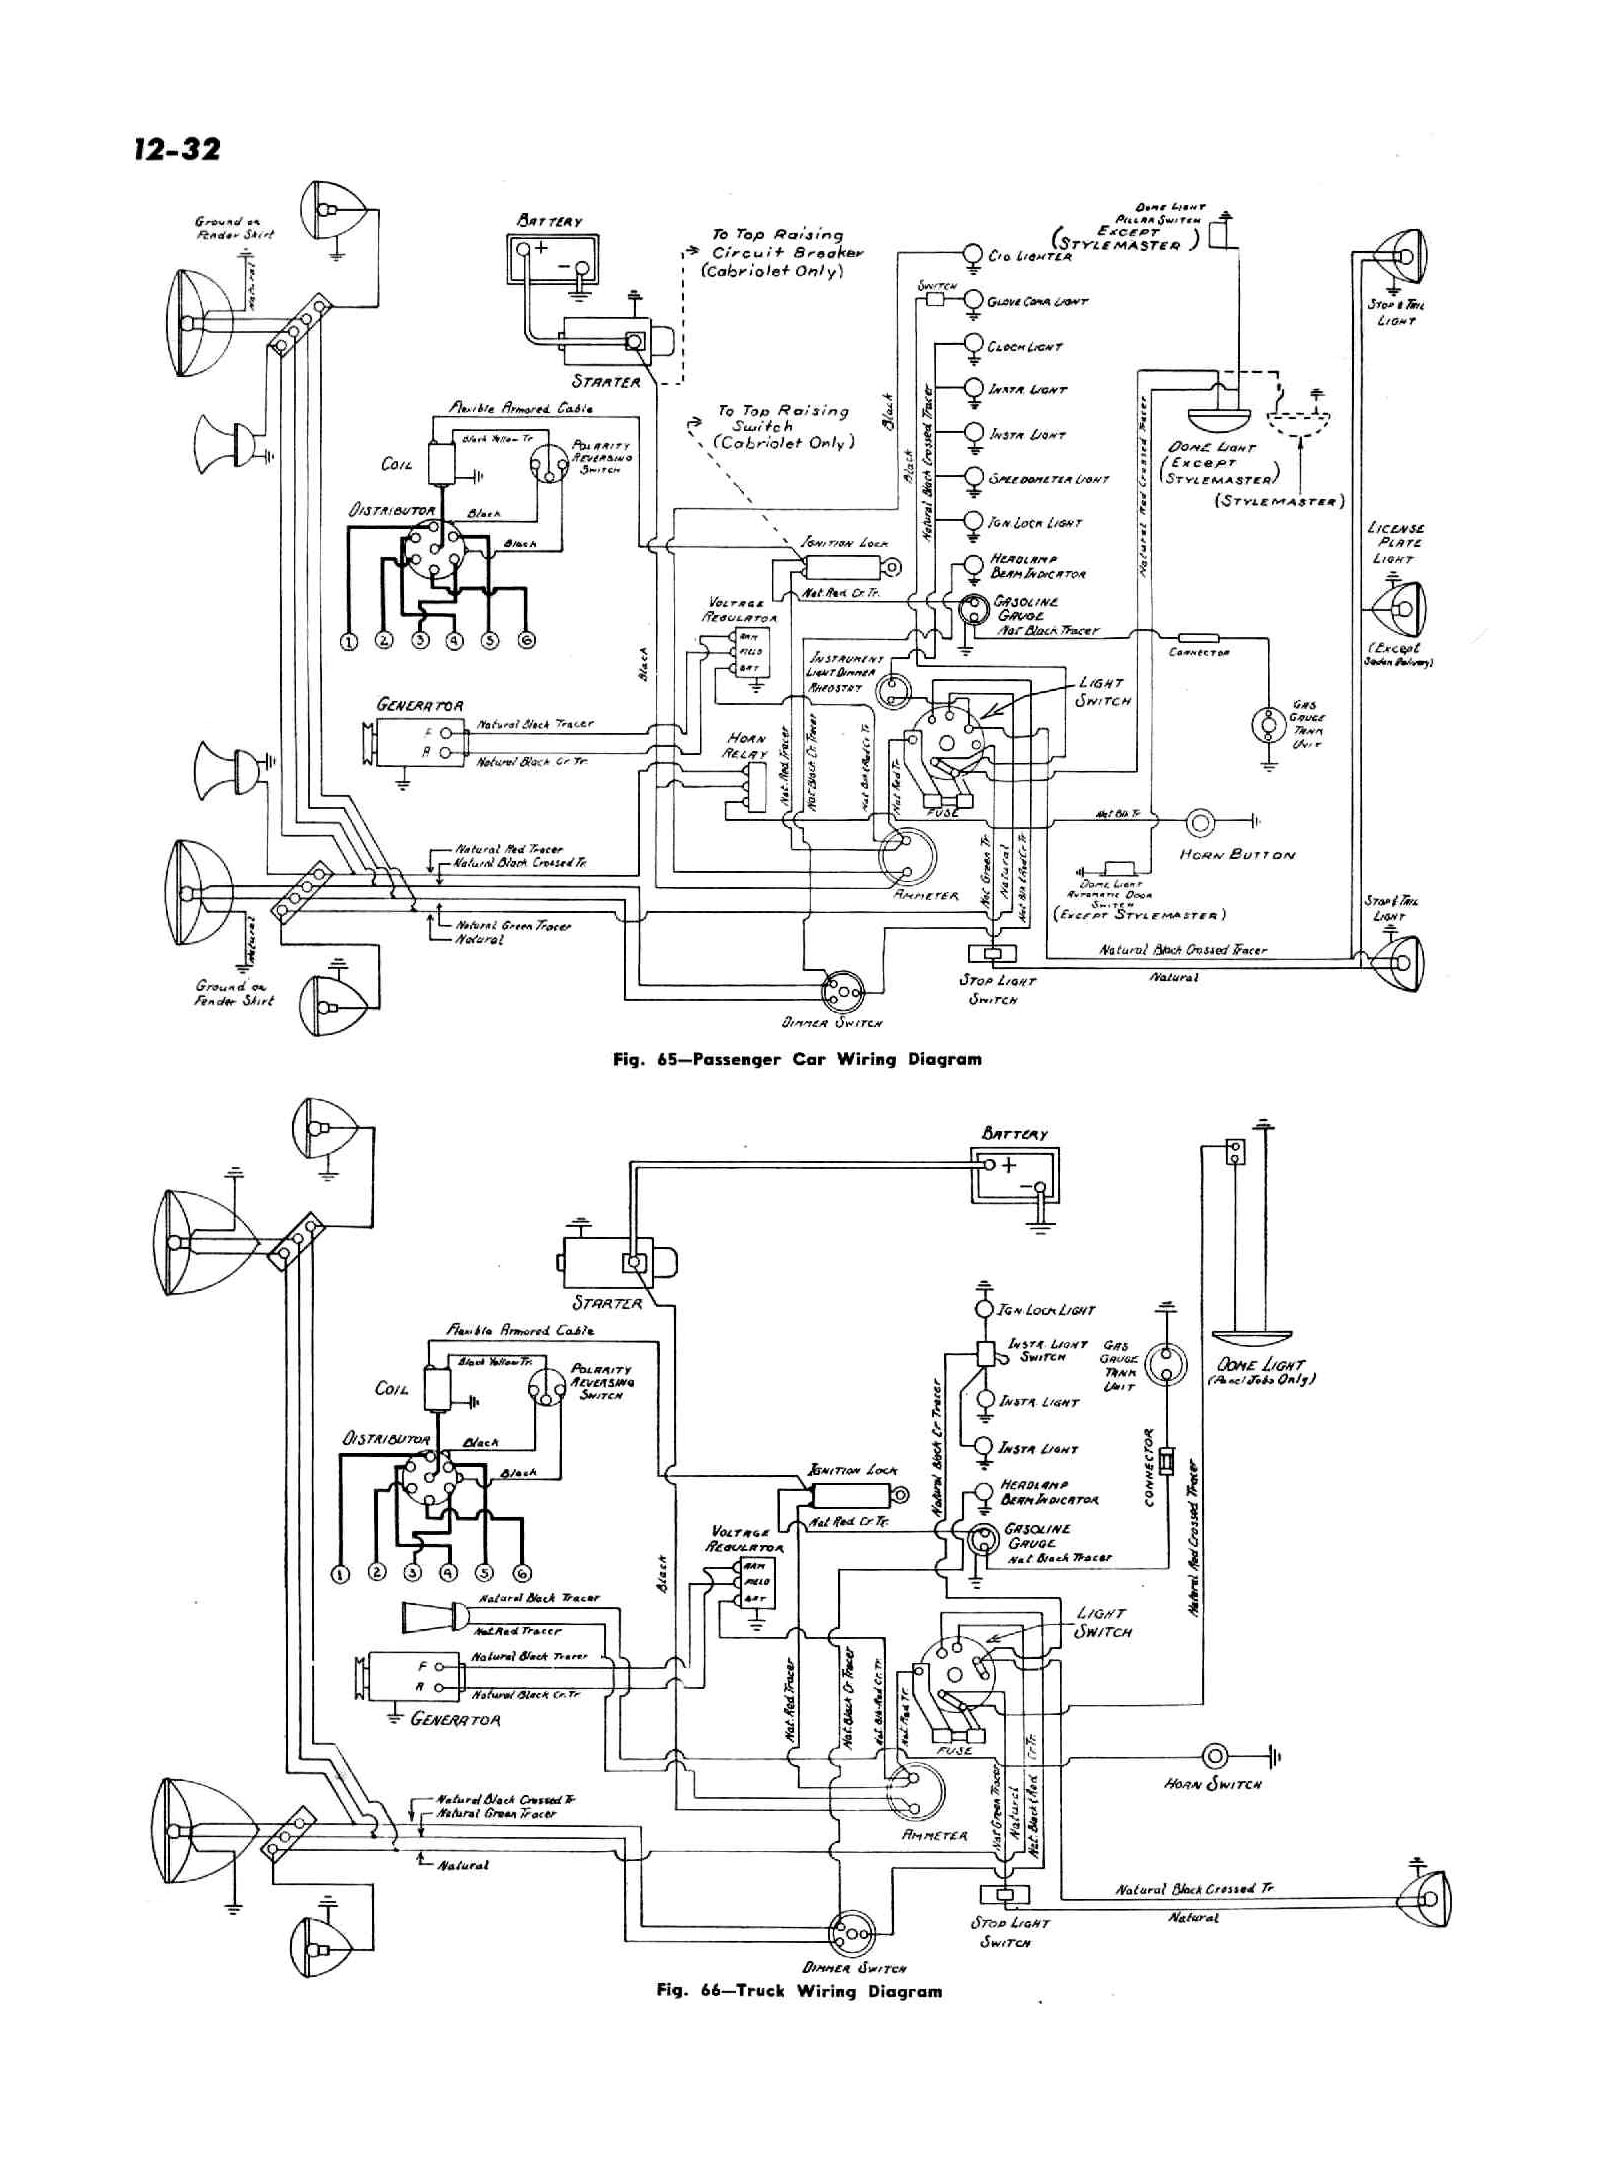 1949 gmc 6 volt wiring harness